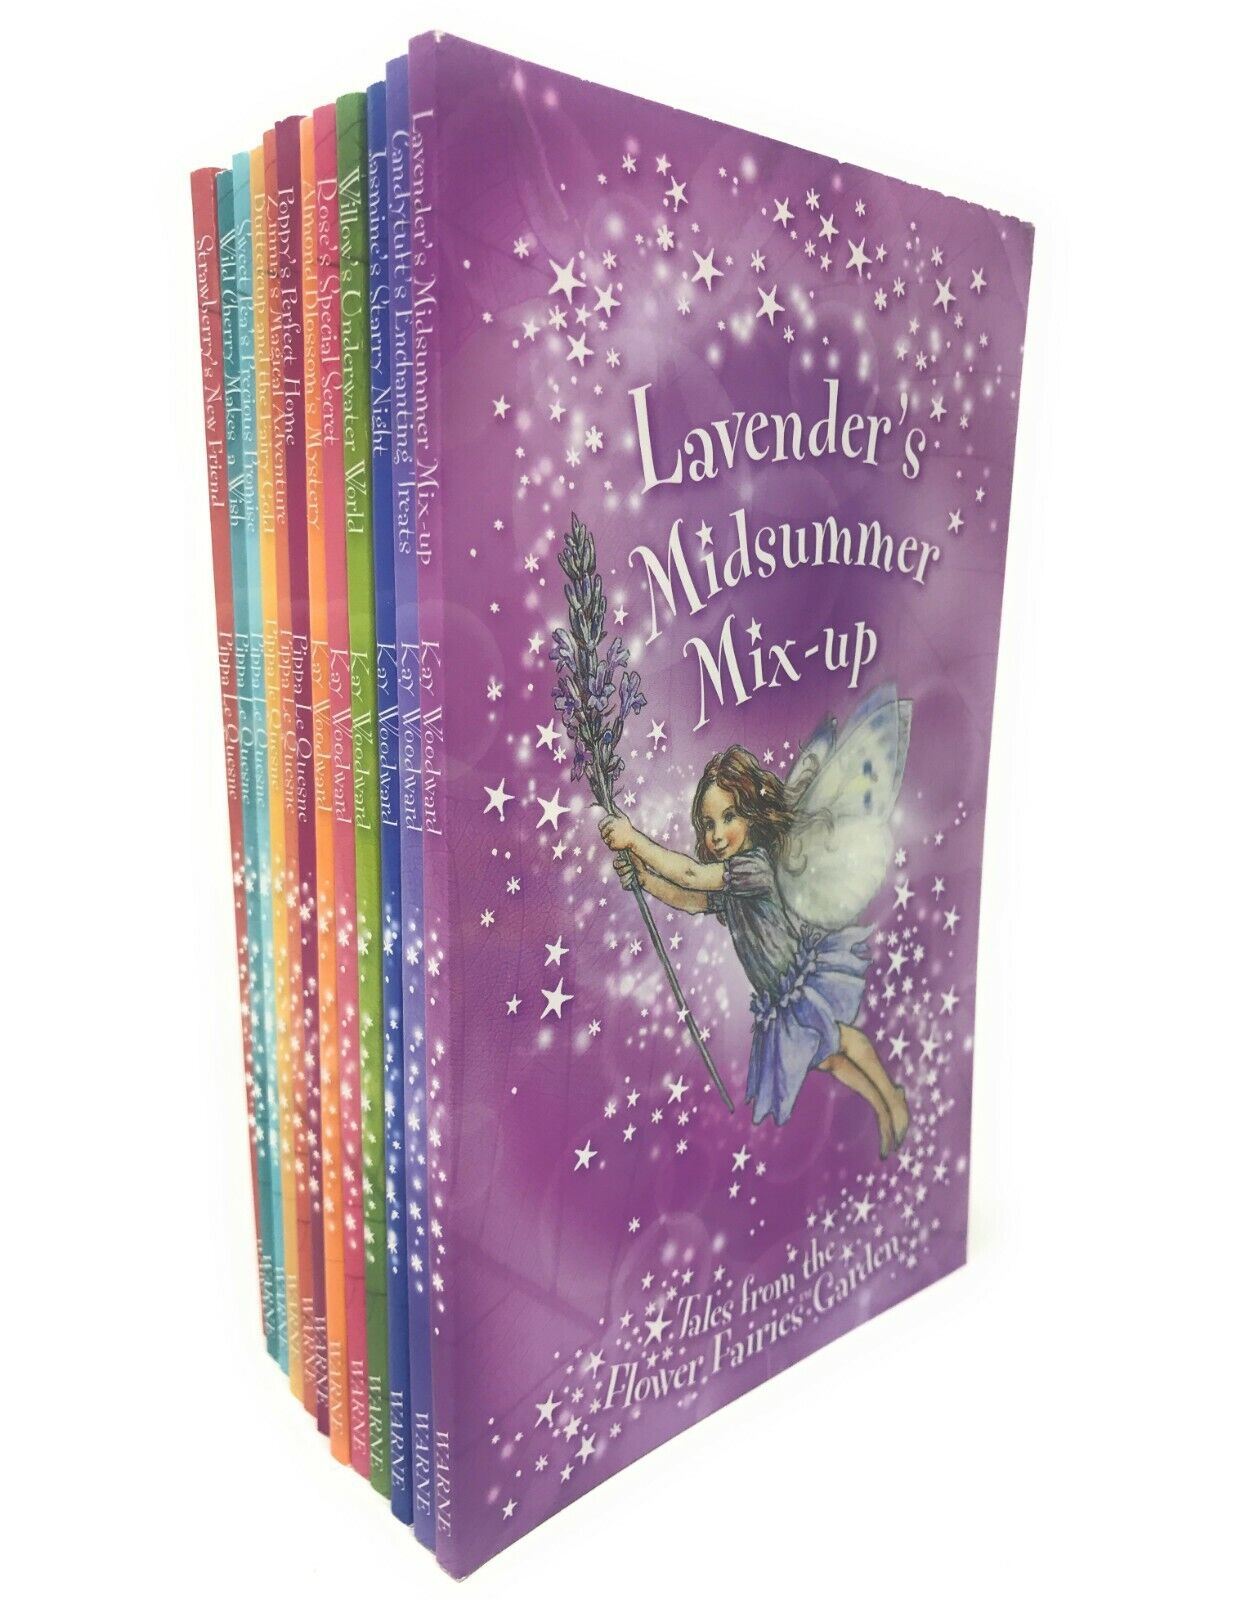 details about kay woodward the flower fairies secret stories 12 books  collection set new pack